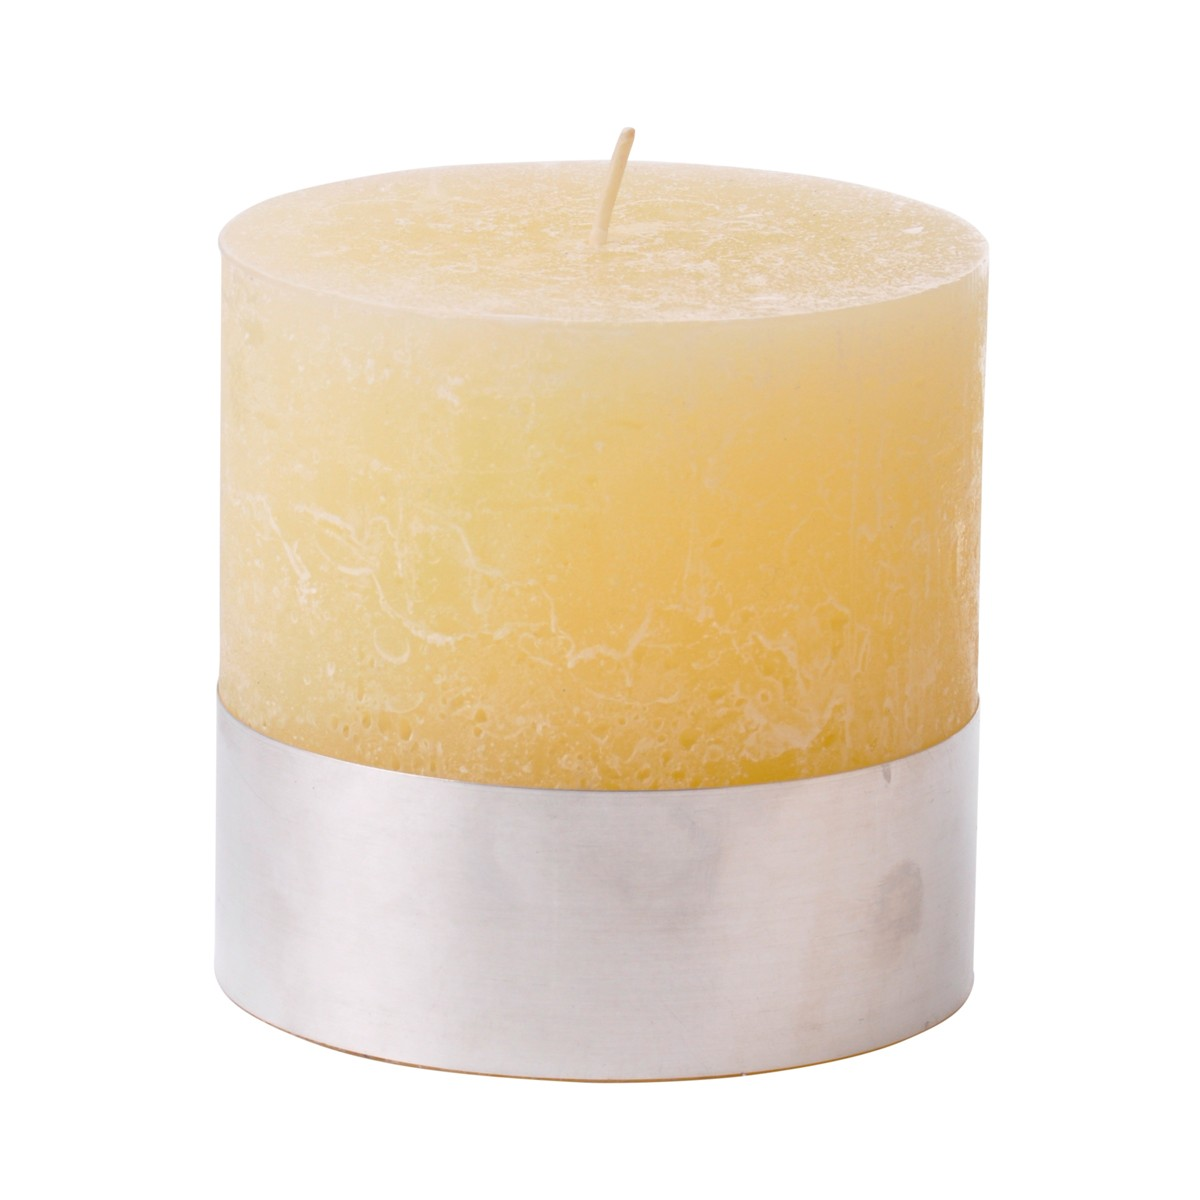 Angel Sand - Small Cream Pillar Candle